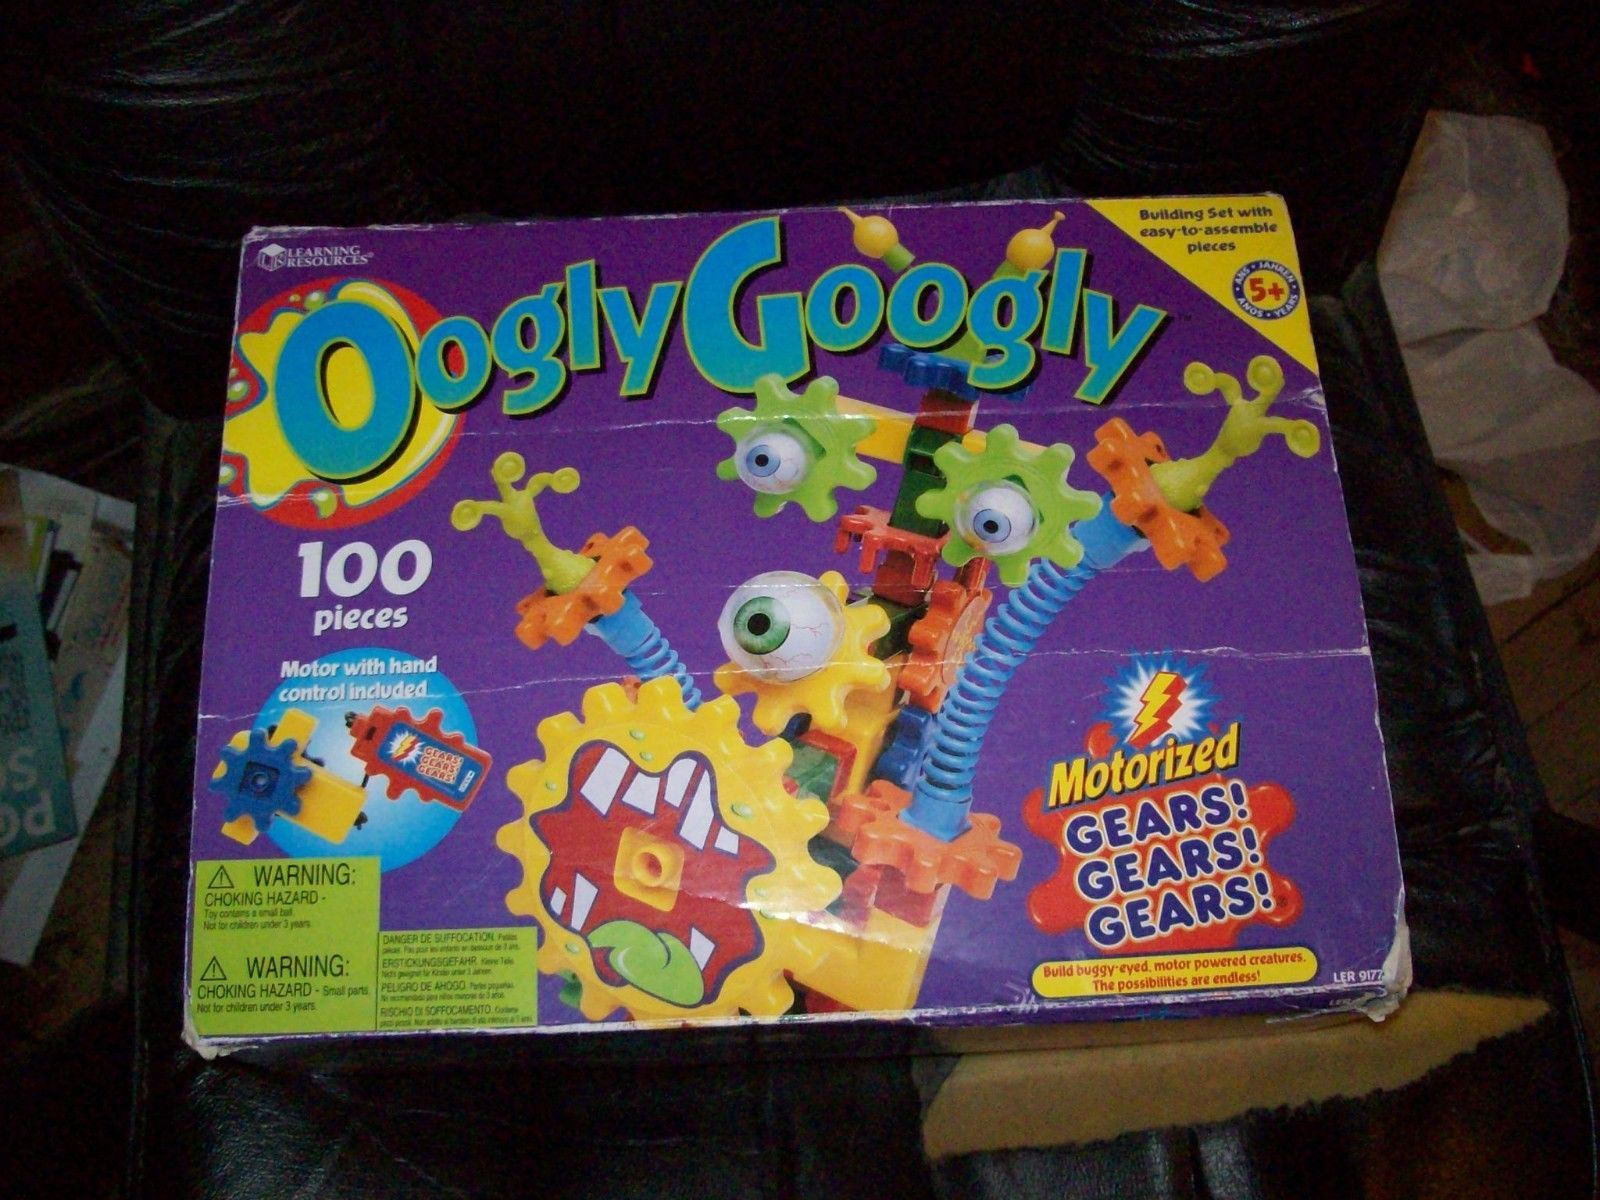 Oogly Googly Motorized Gears! Building Set